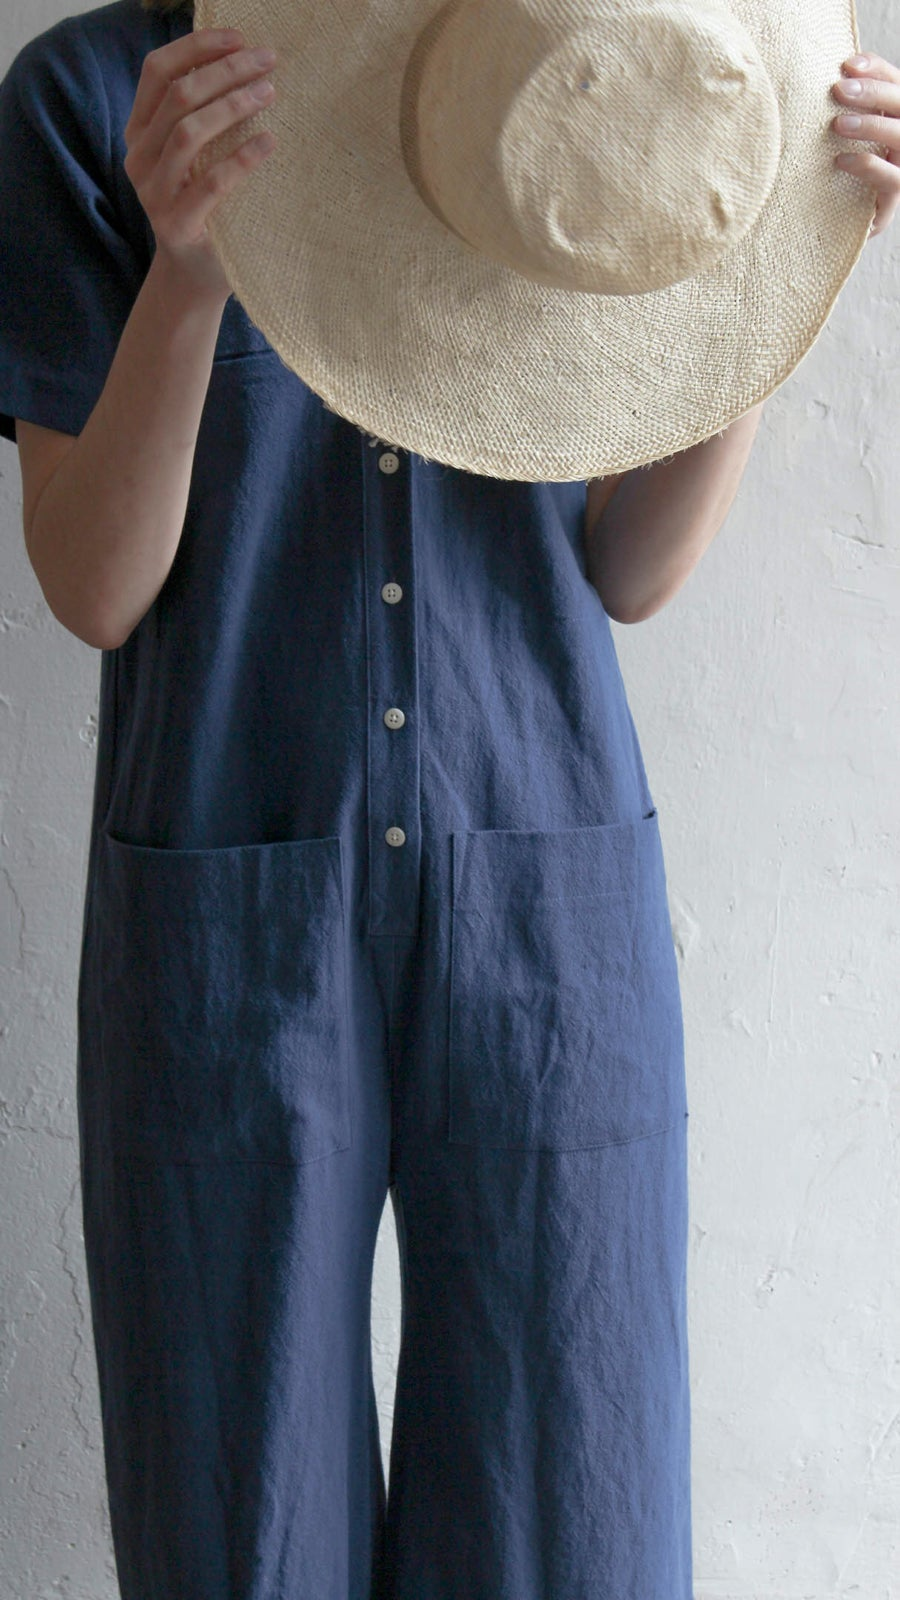 Image of Ilana Kohn Mabel Coverall